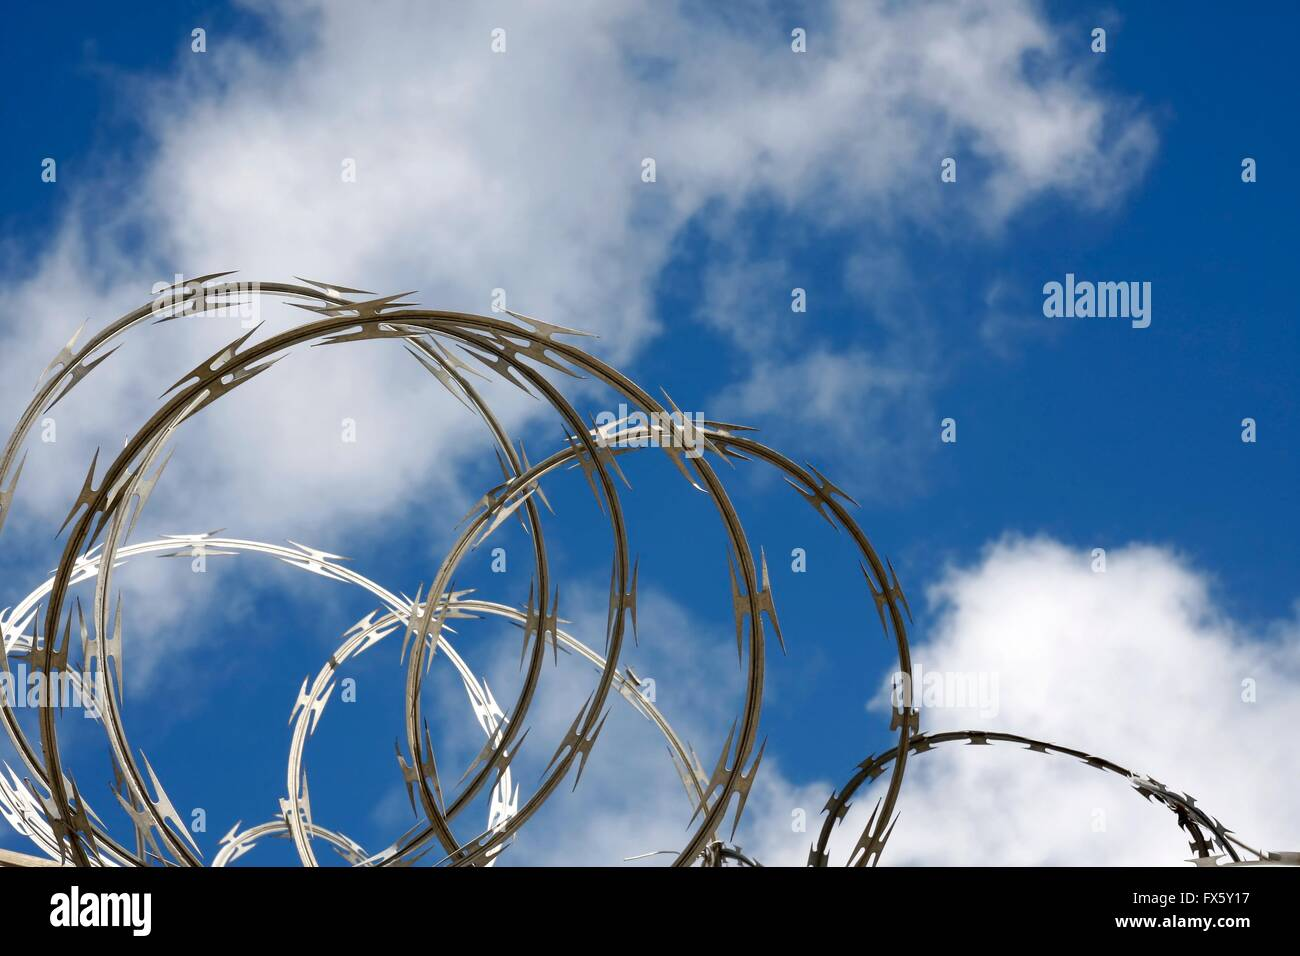 Razor wire against a blue sky with clouds Stock Photo